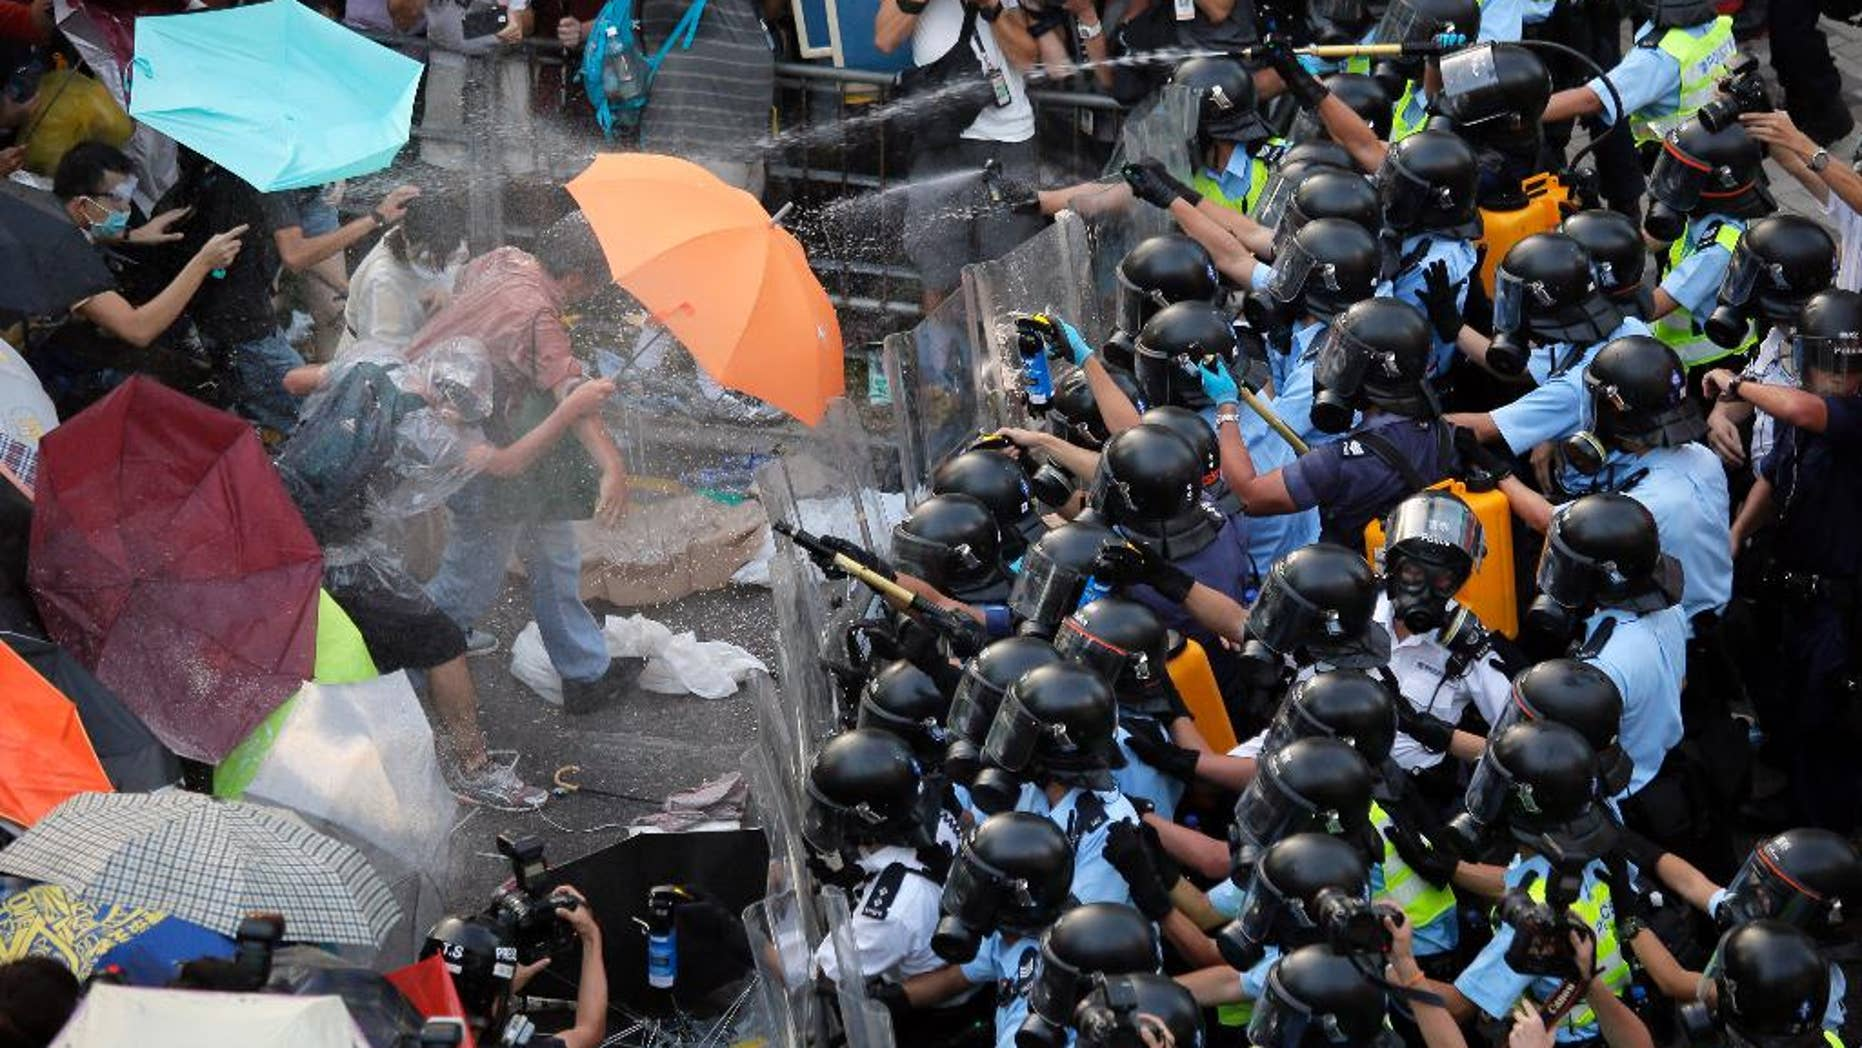 FILE - In this Sept. 28, 2014 file photo, riot police use pepper spray against protesters after thousands of people block a main road to the financial central district outside the government headquarters in Hong Kong. Ubiquitous images in Hong Kong media with masses of unarmed students fending off pepper spray with umbrellas could not contrast more starkly with mainland China's virtual blackout of news about the territory's pro-democracy protests. (AP Photo/Vincent Yu, File)